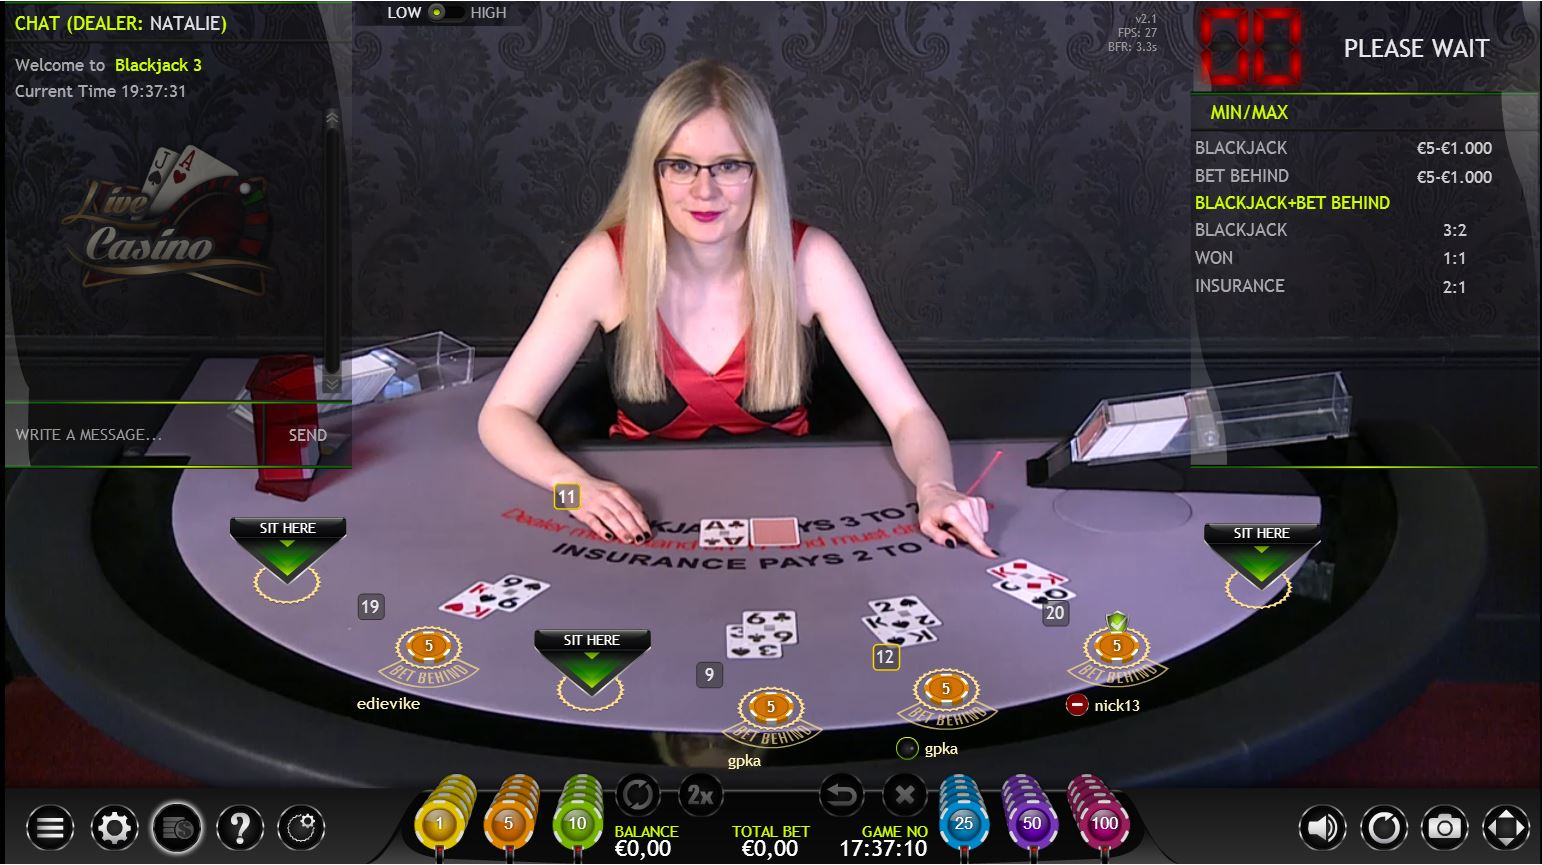 magicbet live casino blackjack